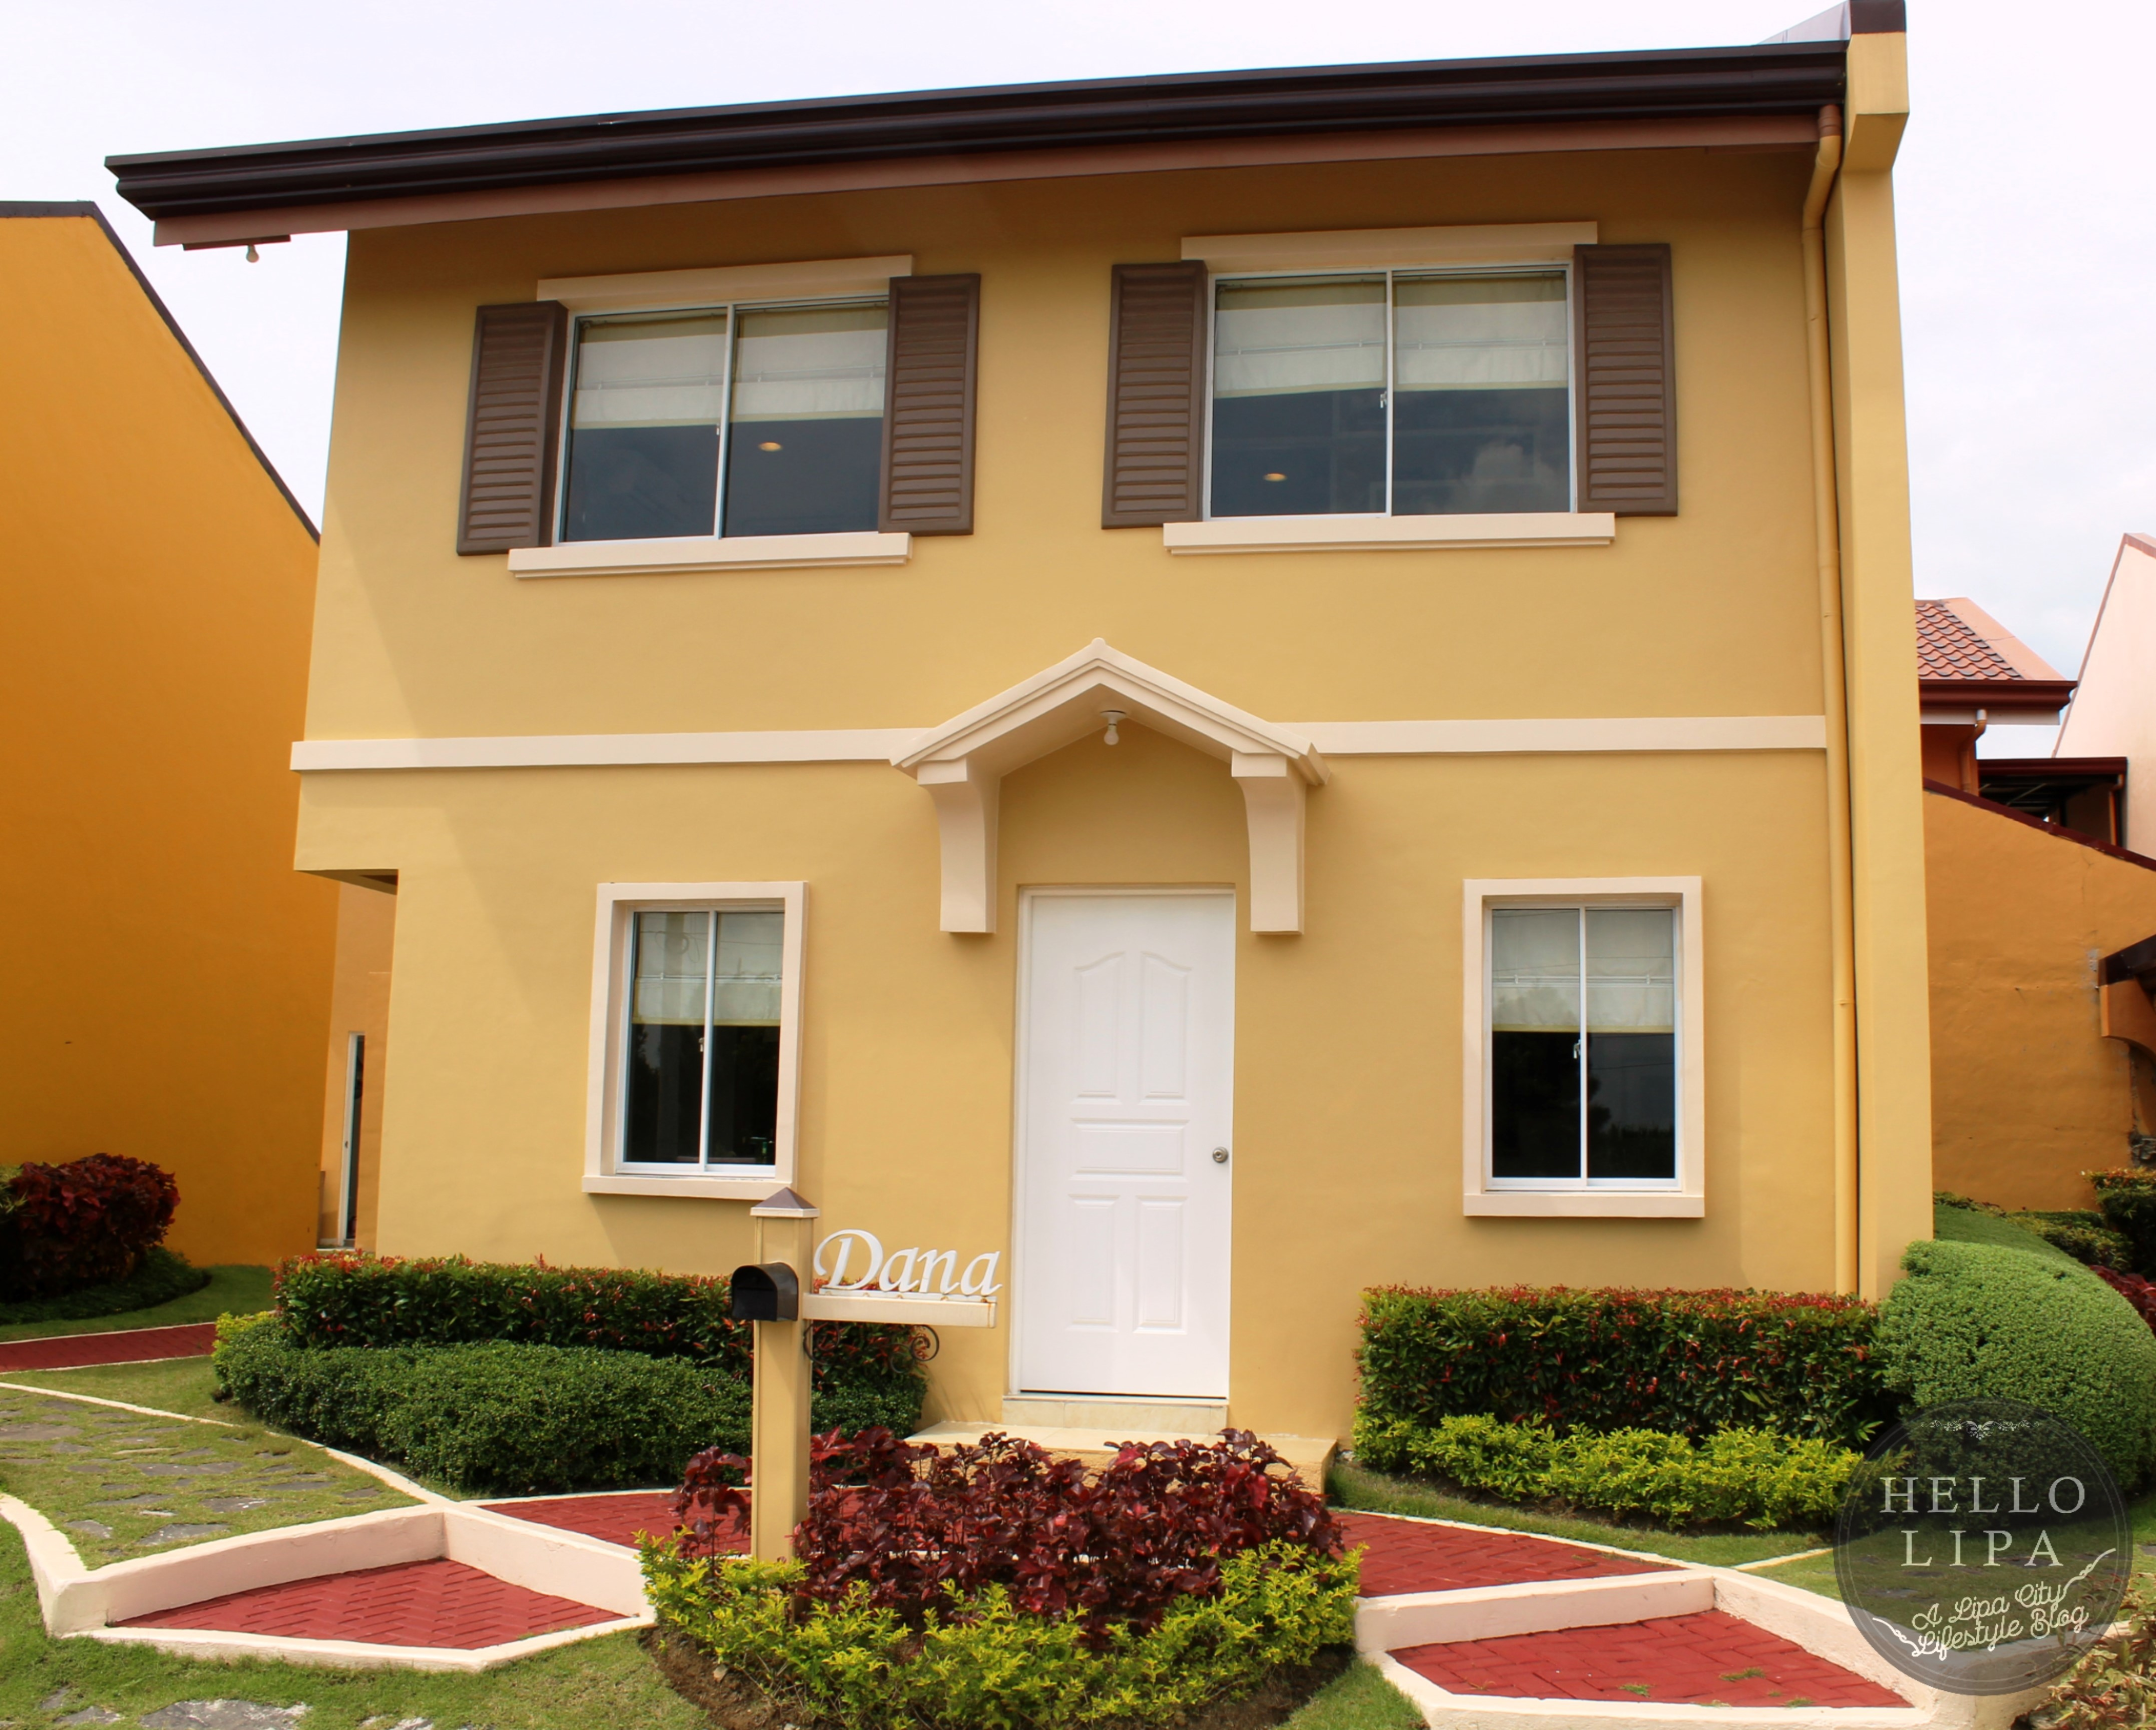 Camella Homes Lipa An Investment That Grows Is Within Reach